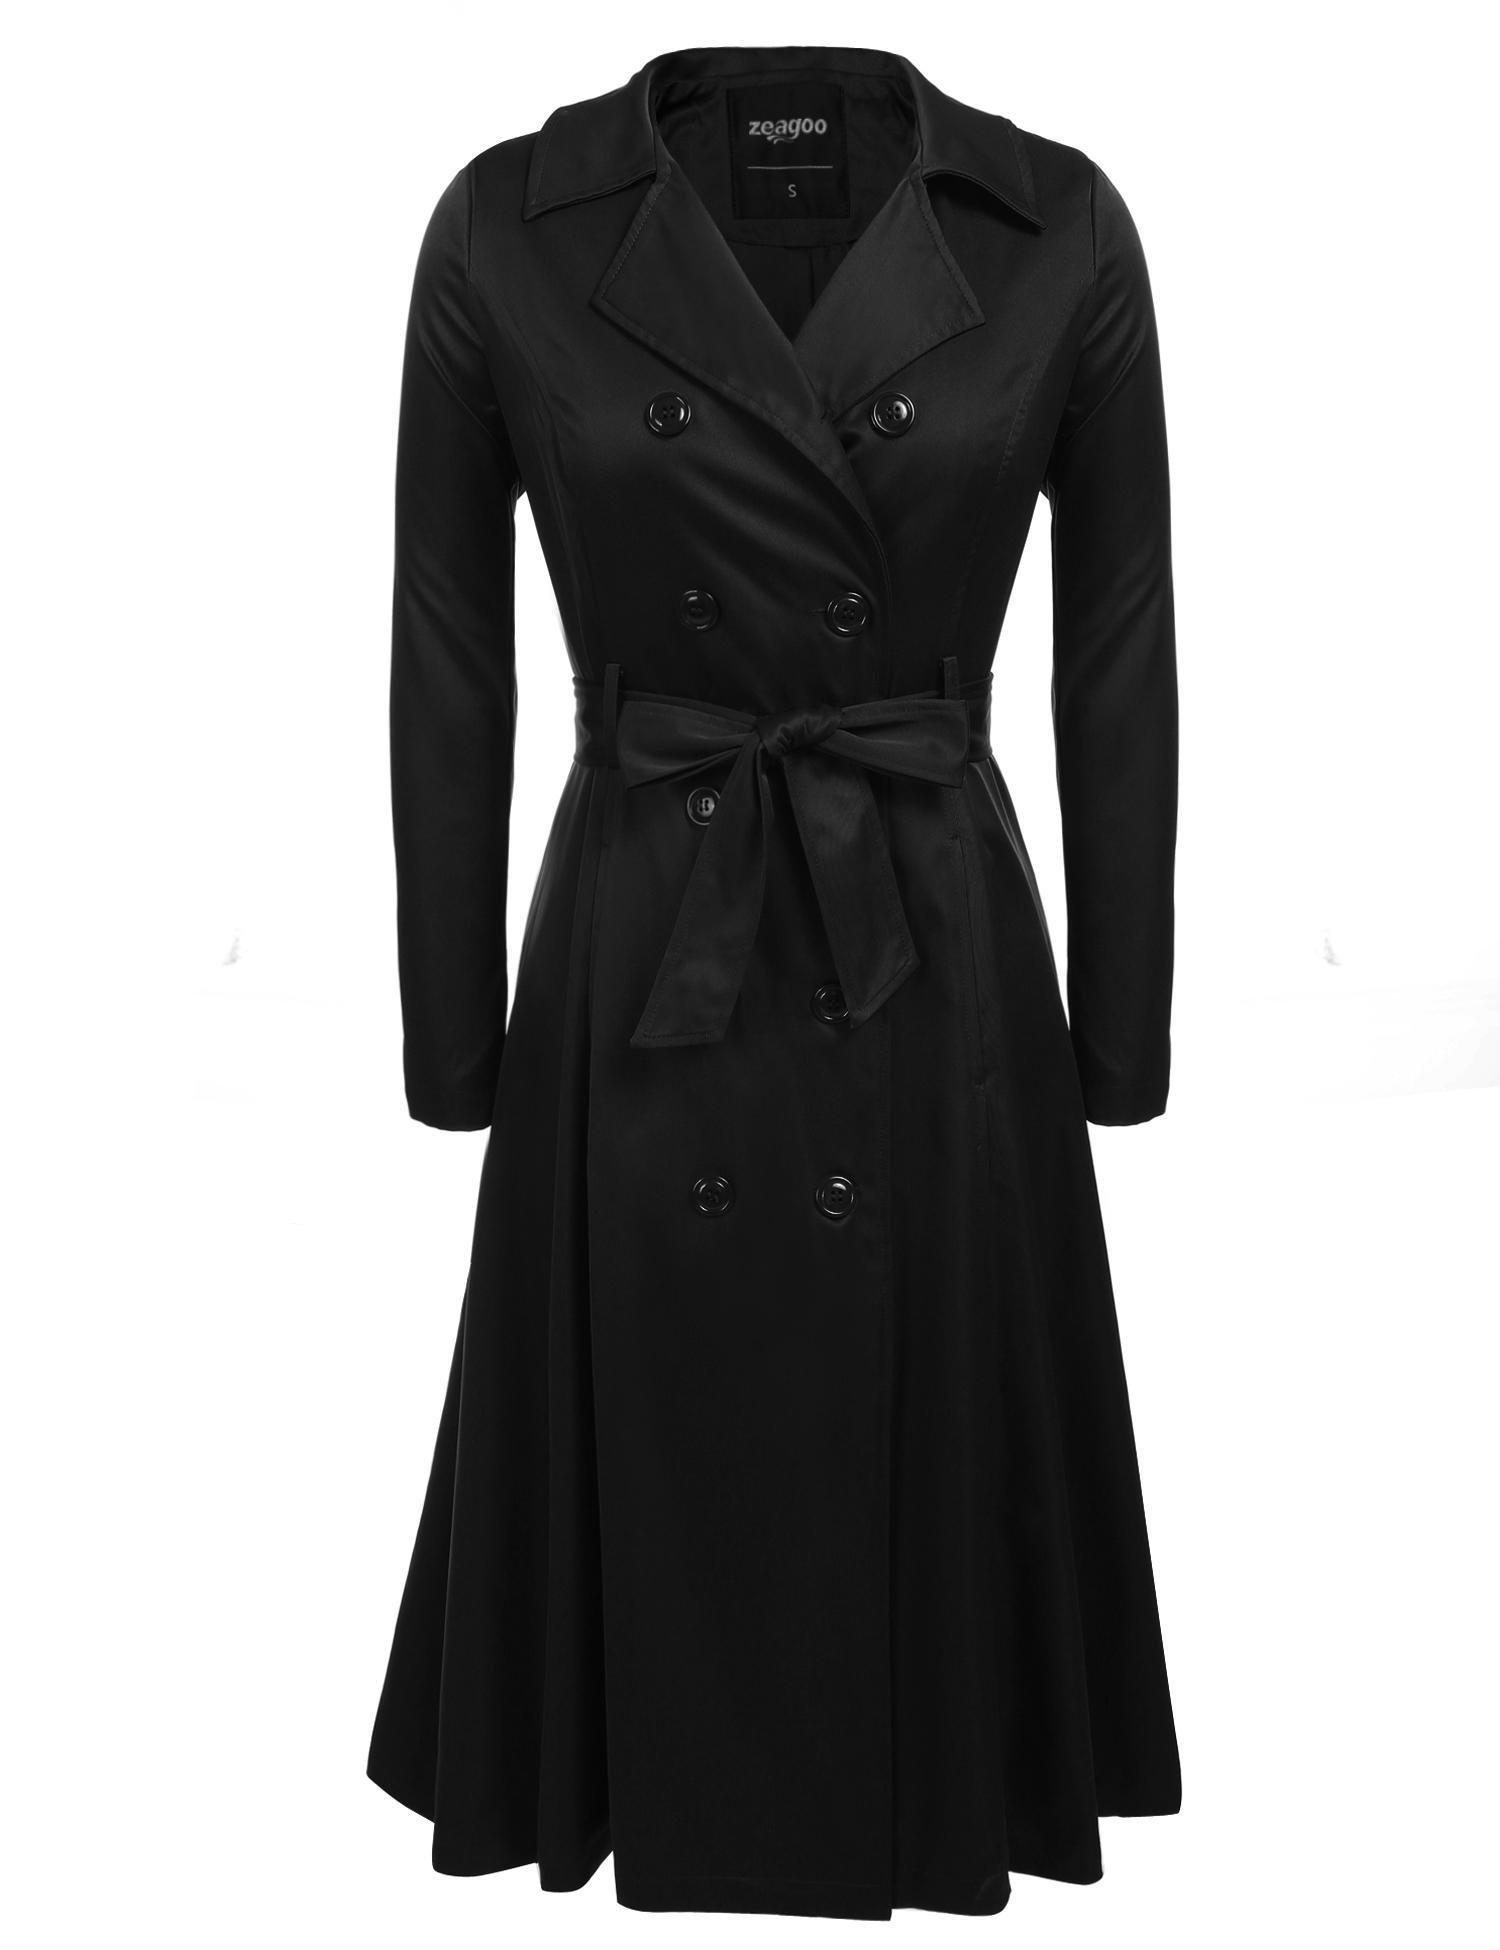 Zeagoo Women's Double-Breasted Long Trench Coat with Belt,Large,Black by Zeagoo